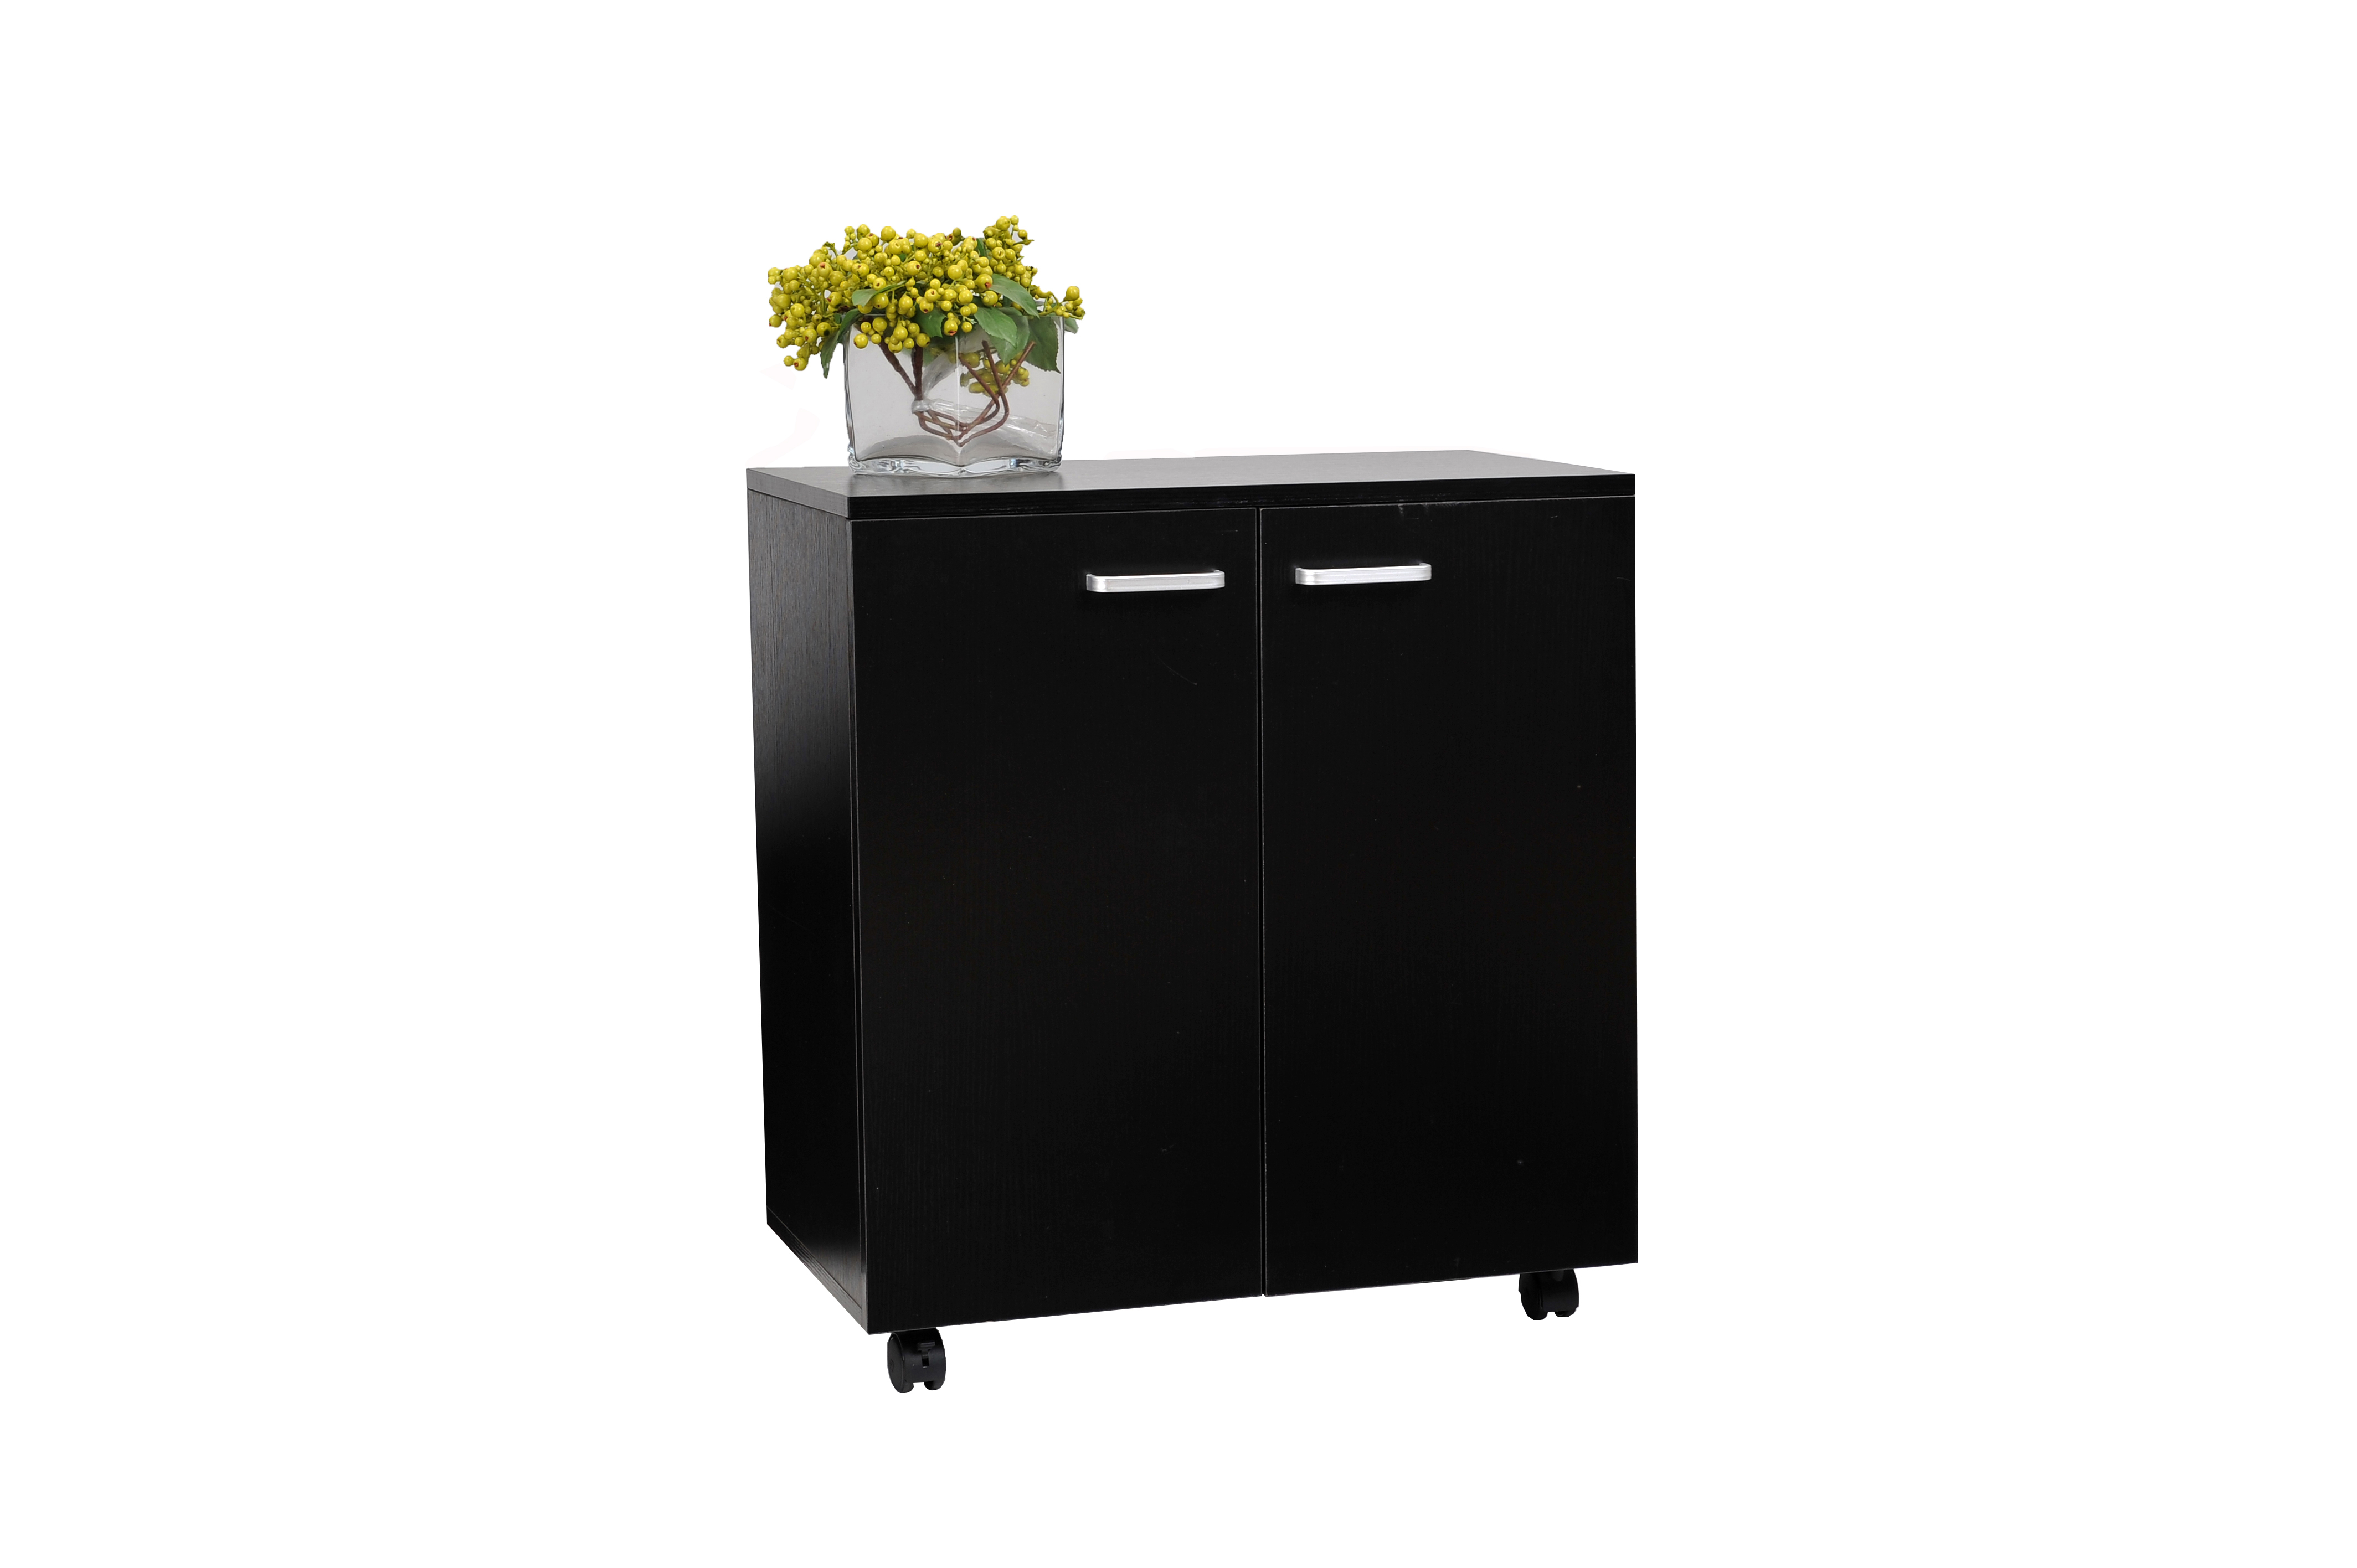 2-door-storage-cabinet-black